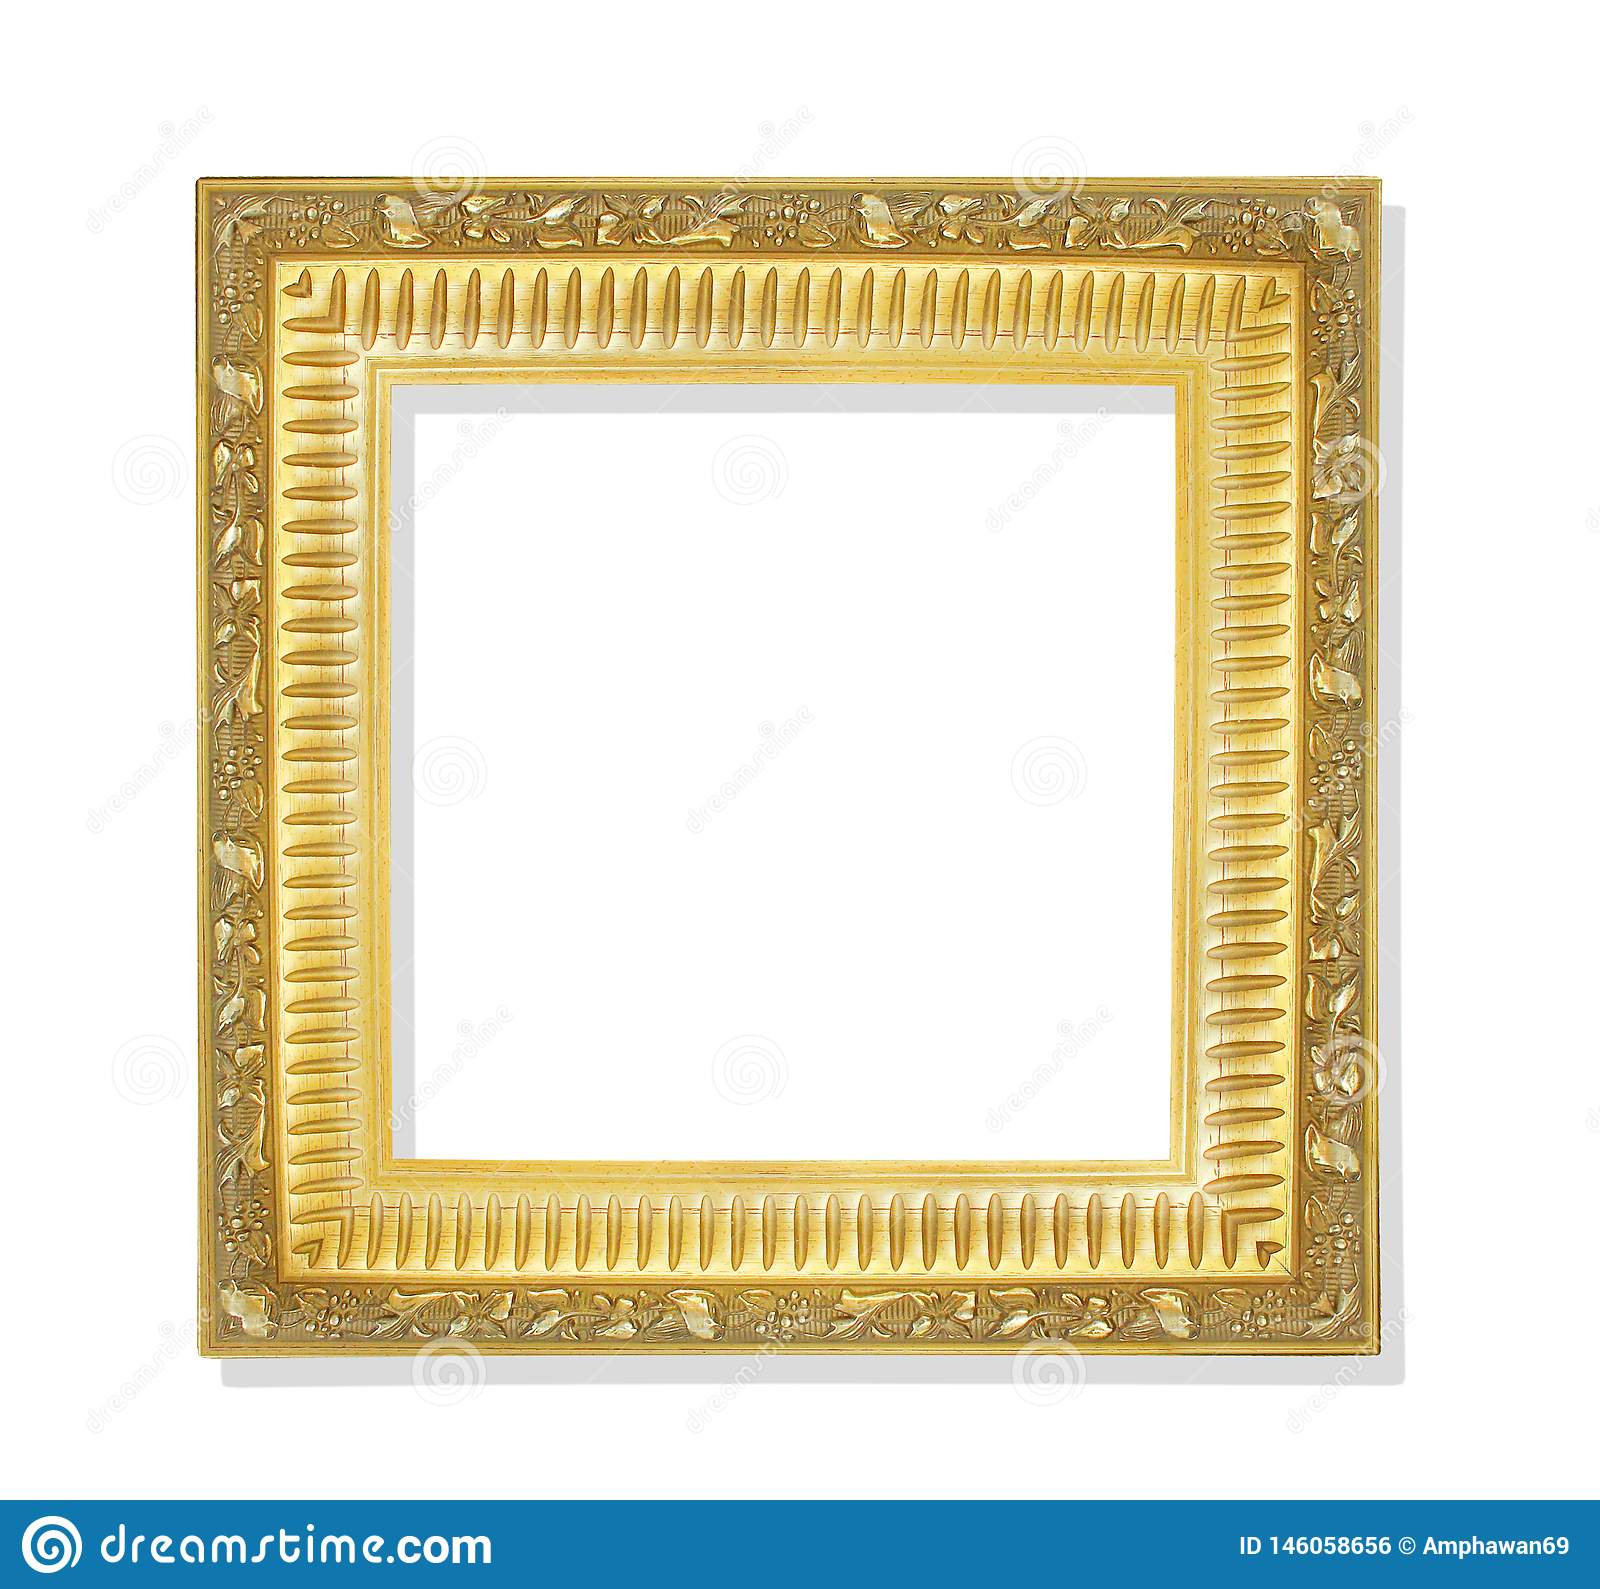 Old golden frame with flower patterns isolated on white background and clipping path